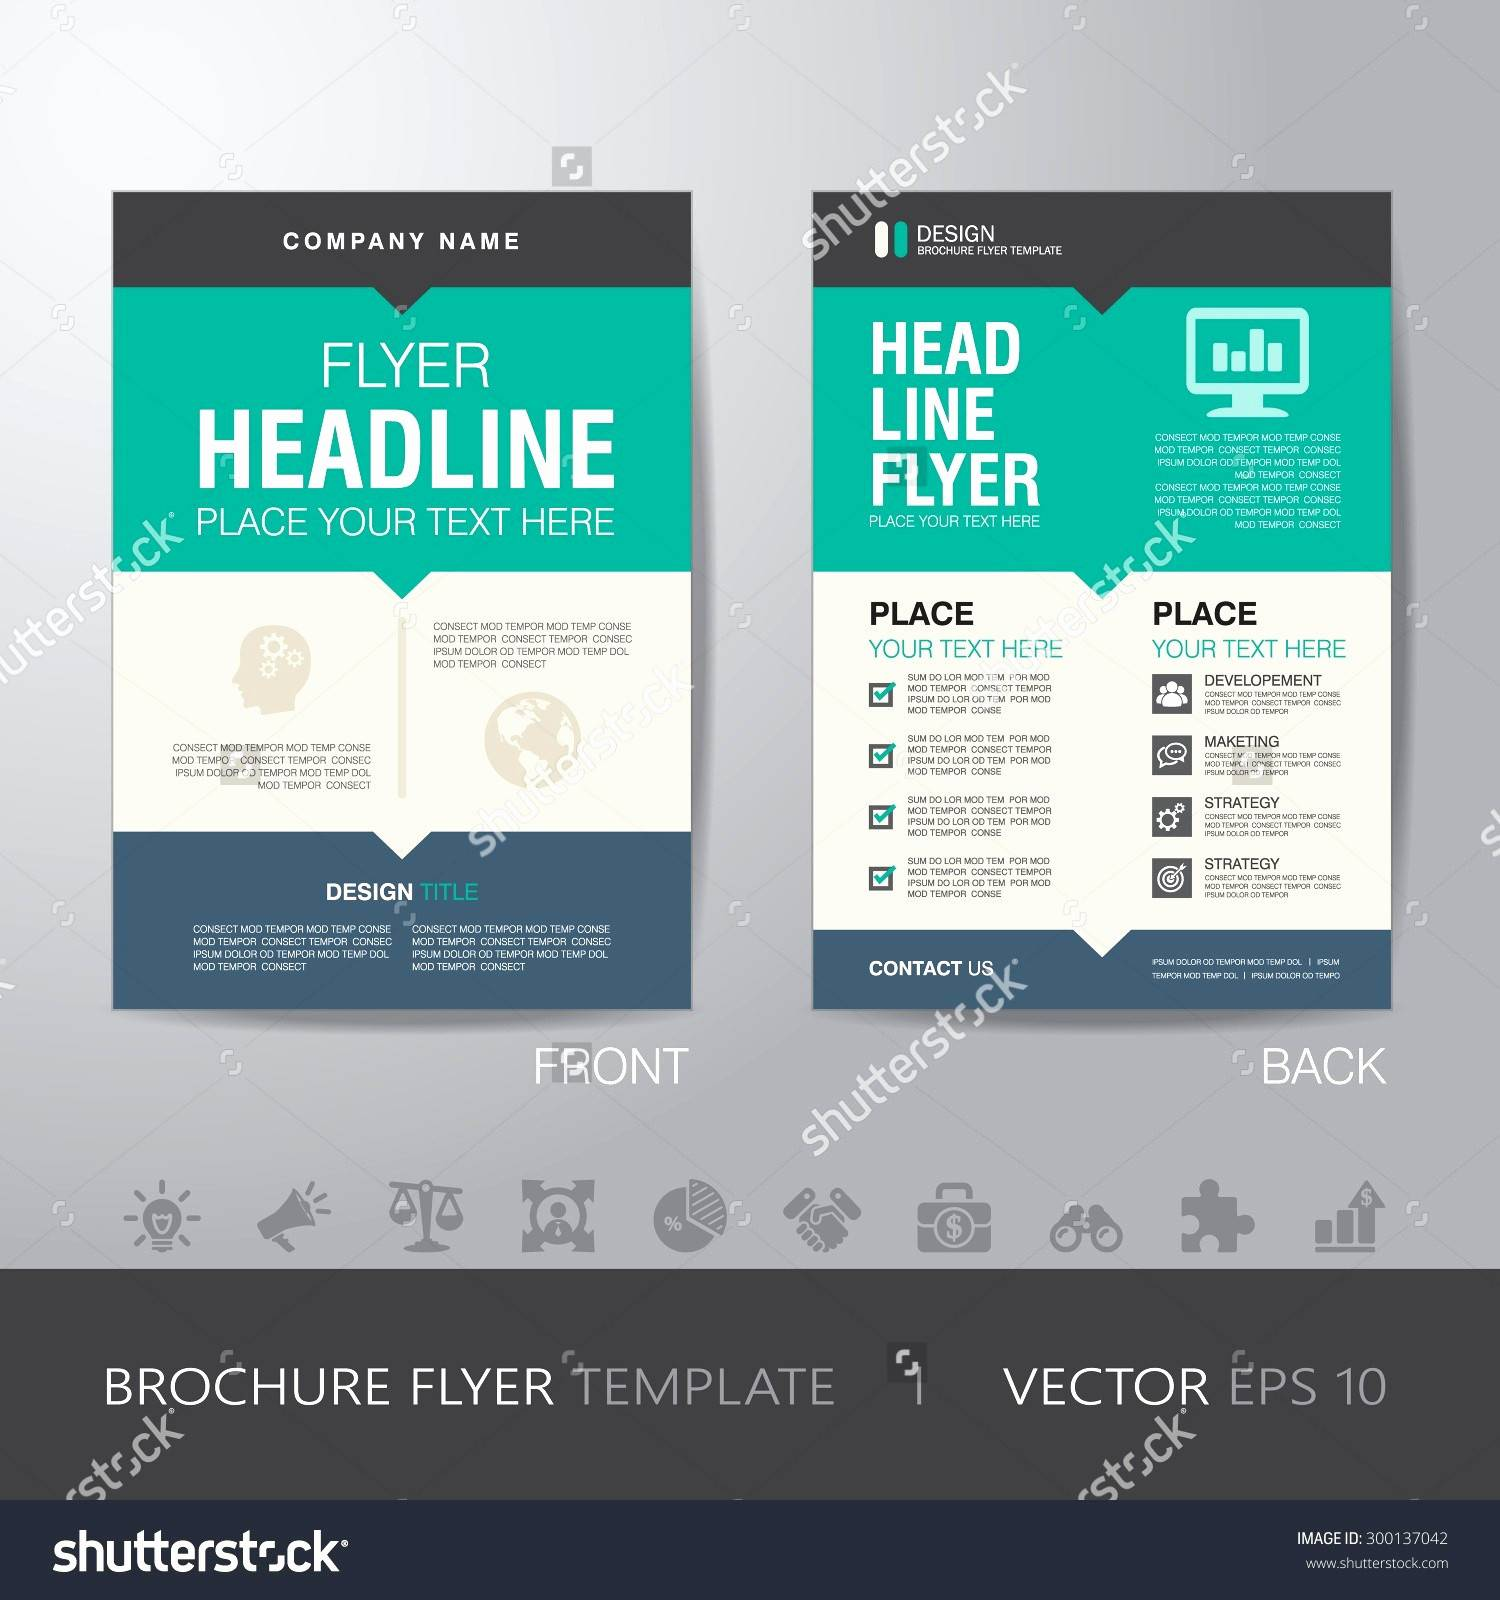 Online Flyers Templates Free